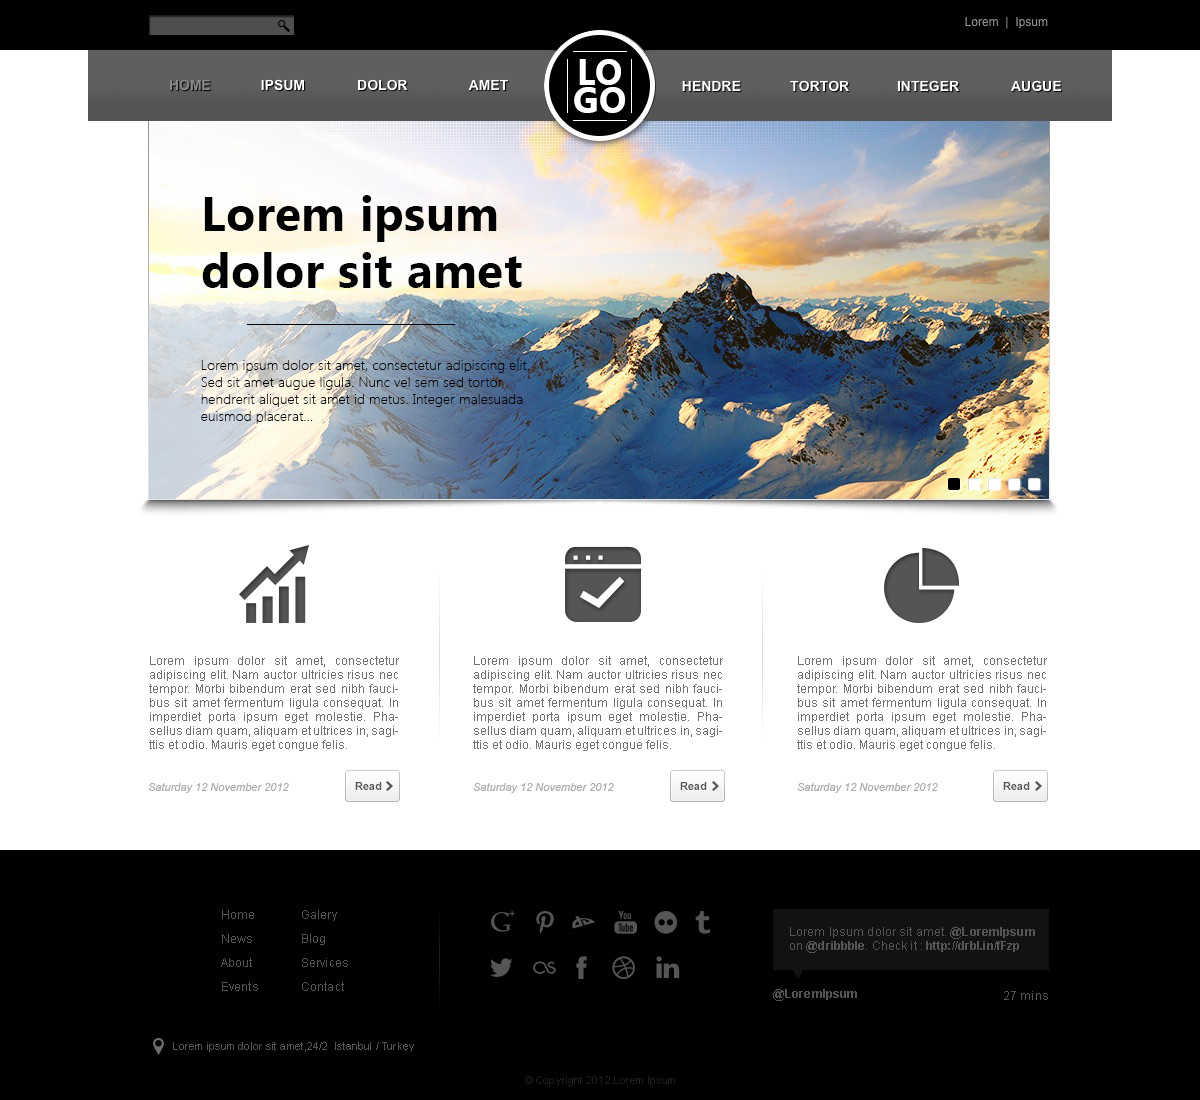 Design for a web page with lorem ipsum dummy content